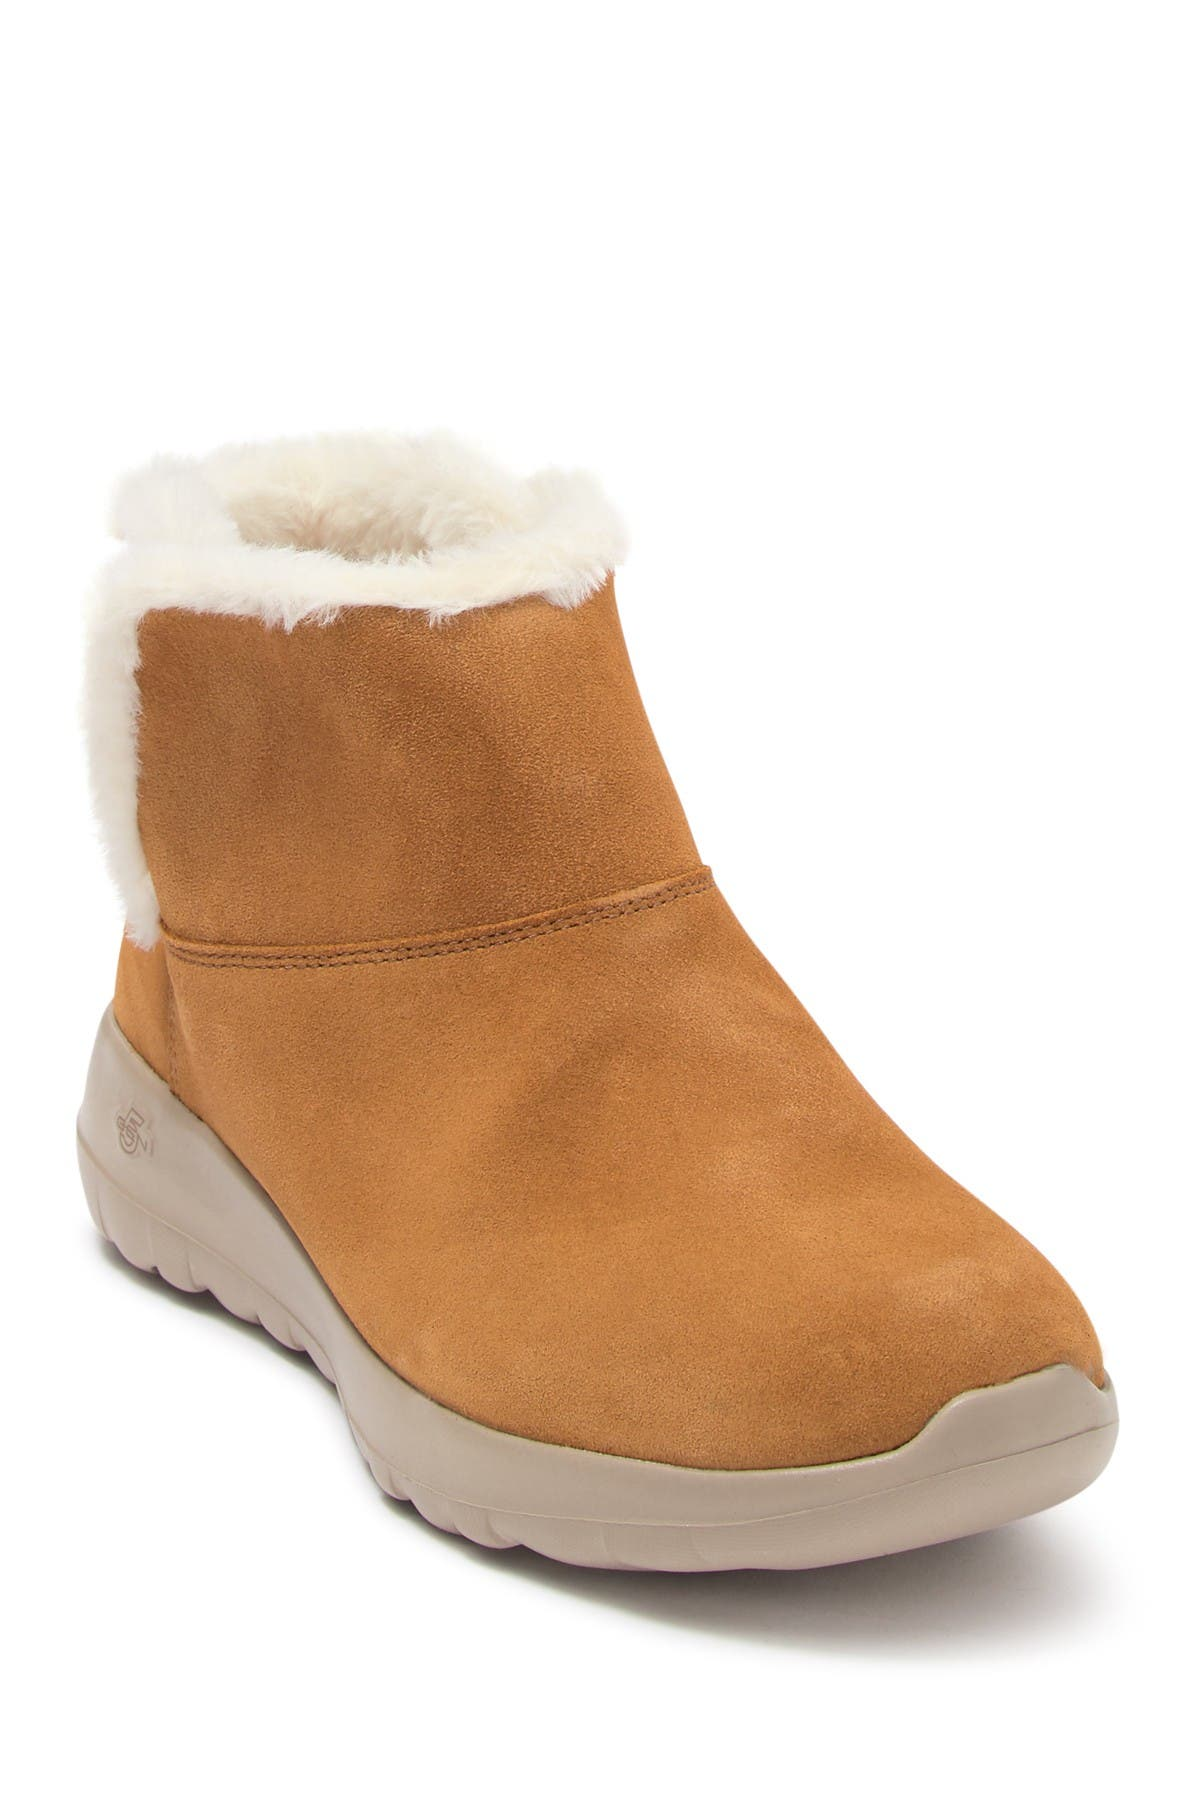 Skechers | On The GO Faux Fur Lined